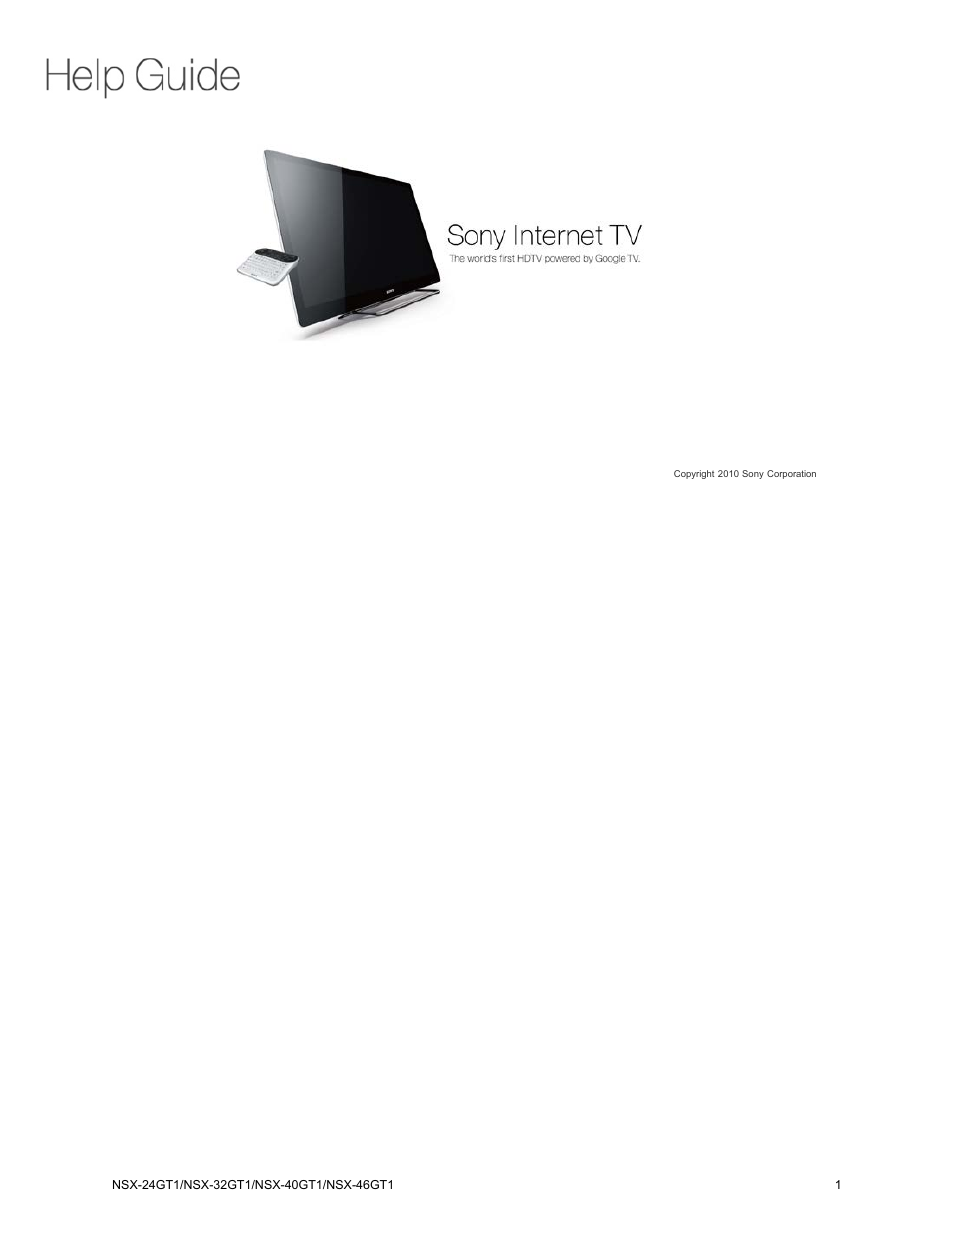 sony nsx 32gt1 user manual 103 pages also for nsx 40gt1 nsx rh manualsdir com NSX-40GT1 Back of TV NSX-40GT1 Remote